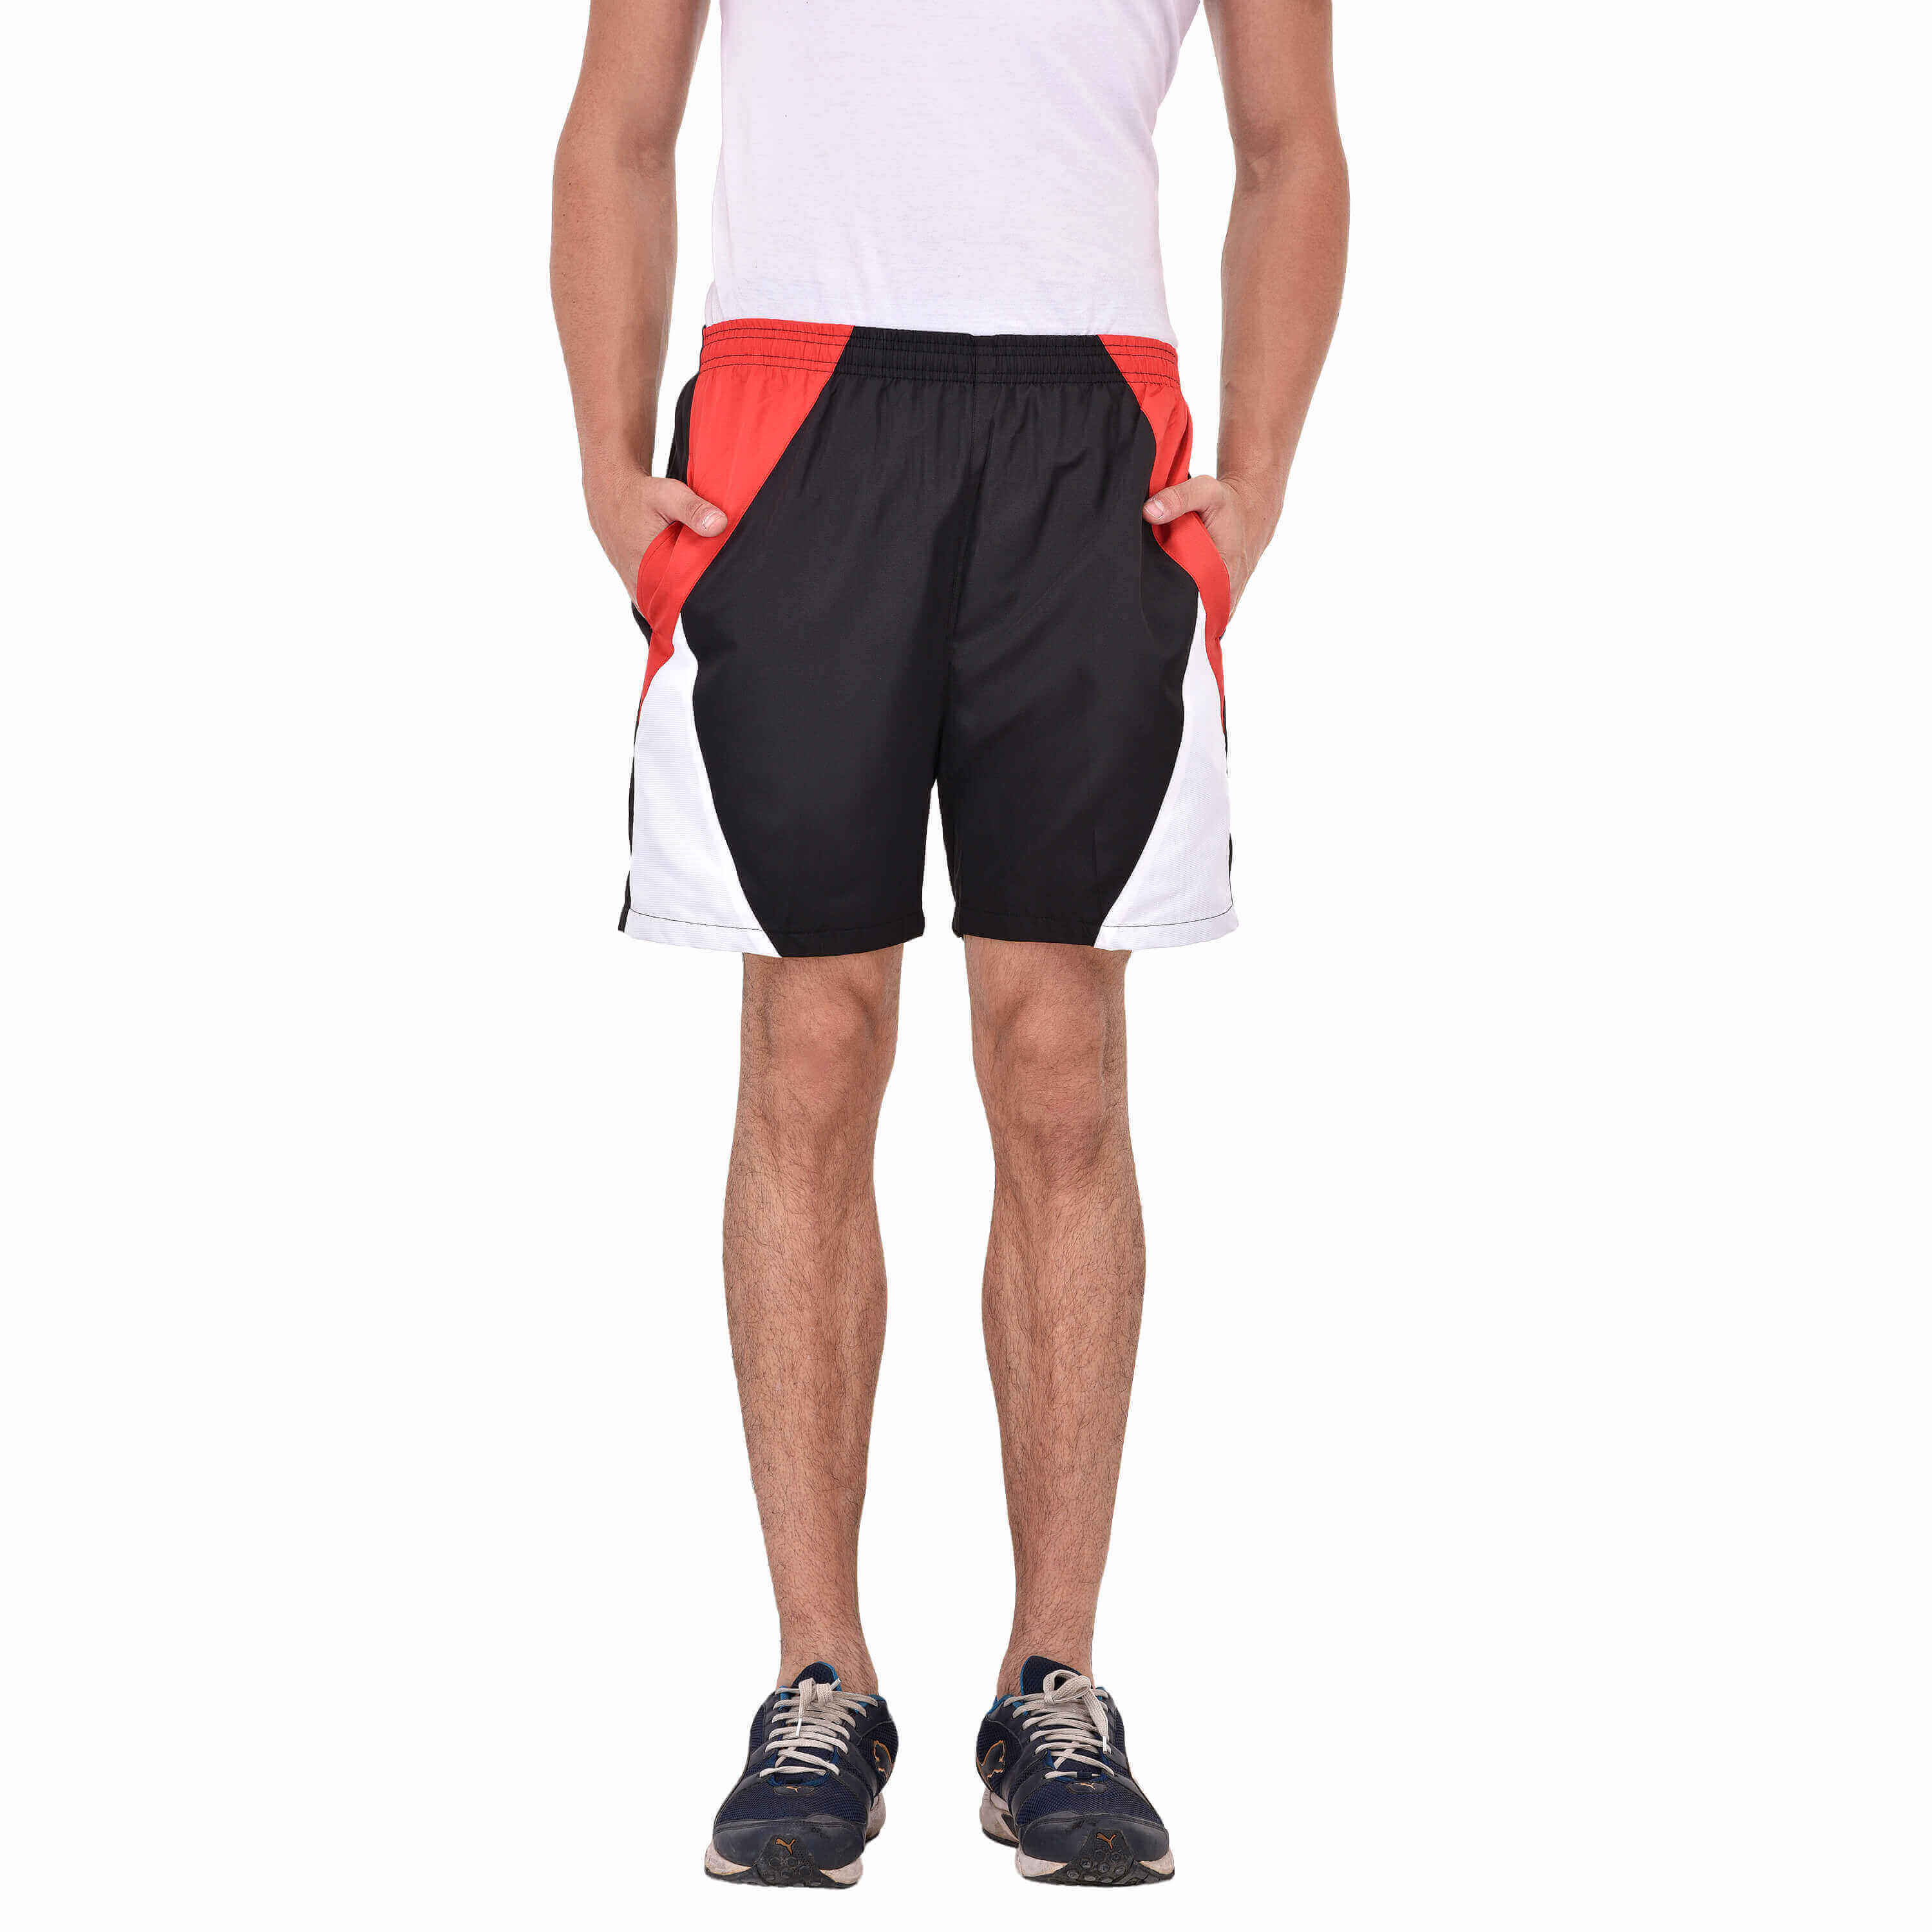 Soccer Shorts Manufacturers in Jalandhar in Bangladesh